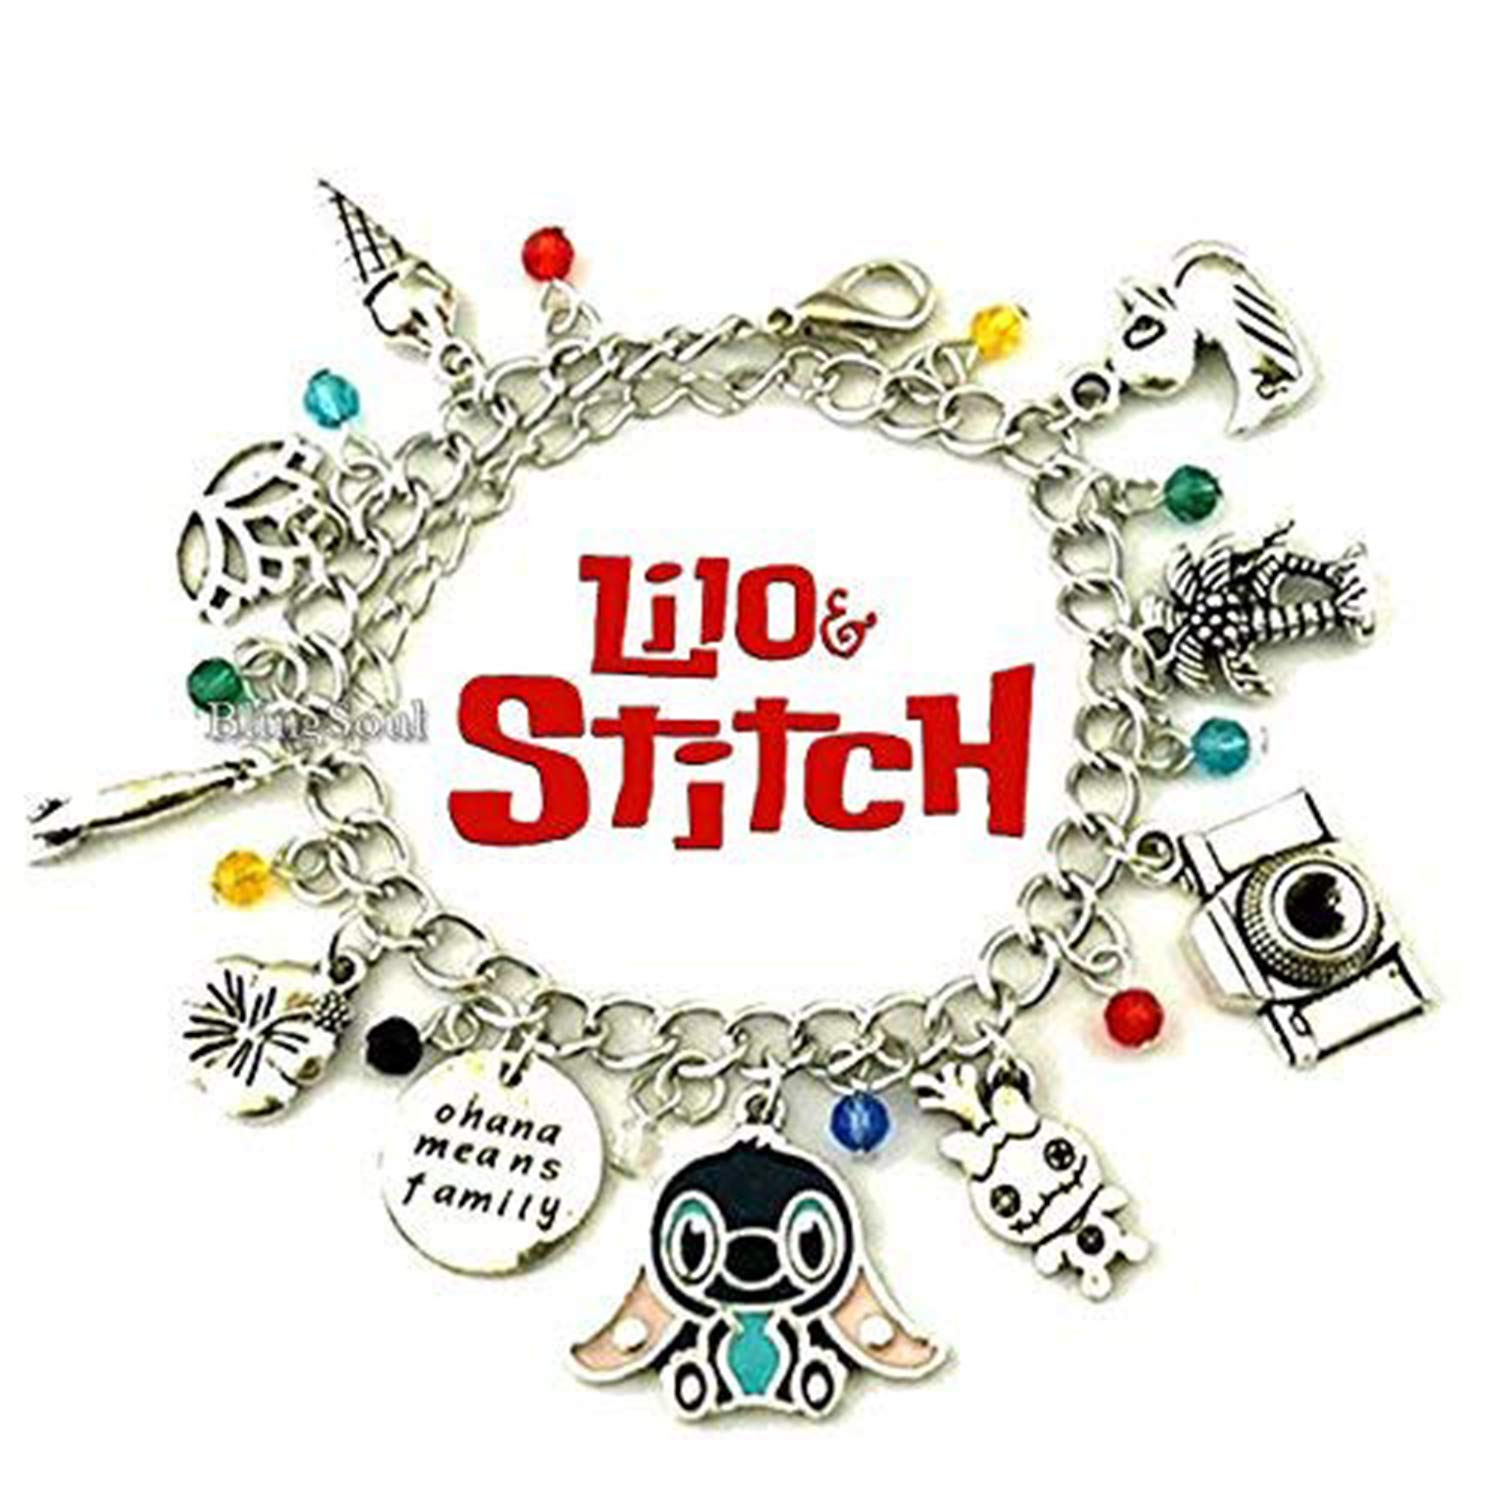 Christmas Lilo and Stitch Gifts for Girls - Disney Lilo Stitch Jewelry Merchandise